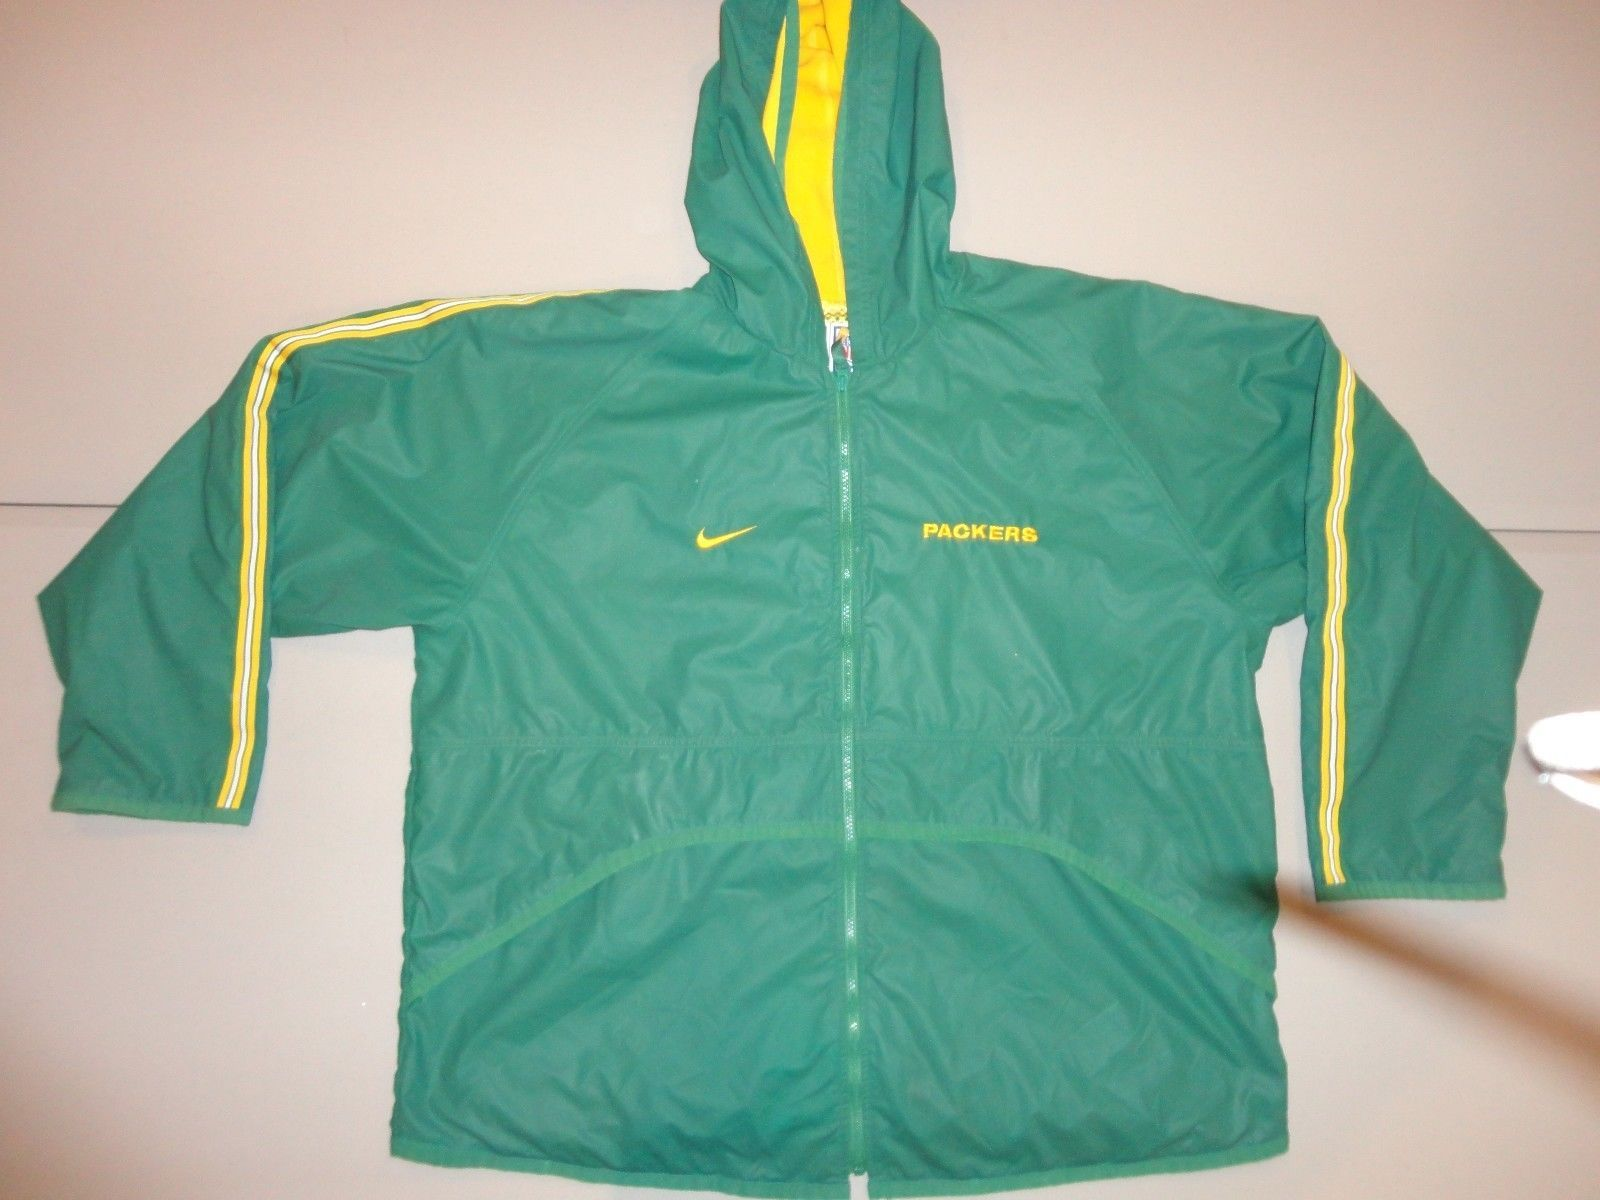 NIKE Authentic Green Bay Packers Sewn Hooded Water Resistant NFL Jacket Men XL